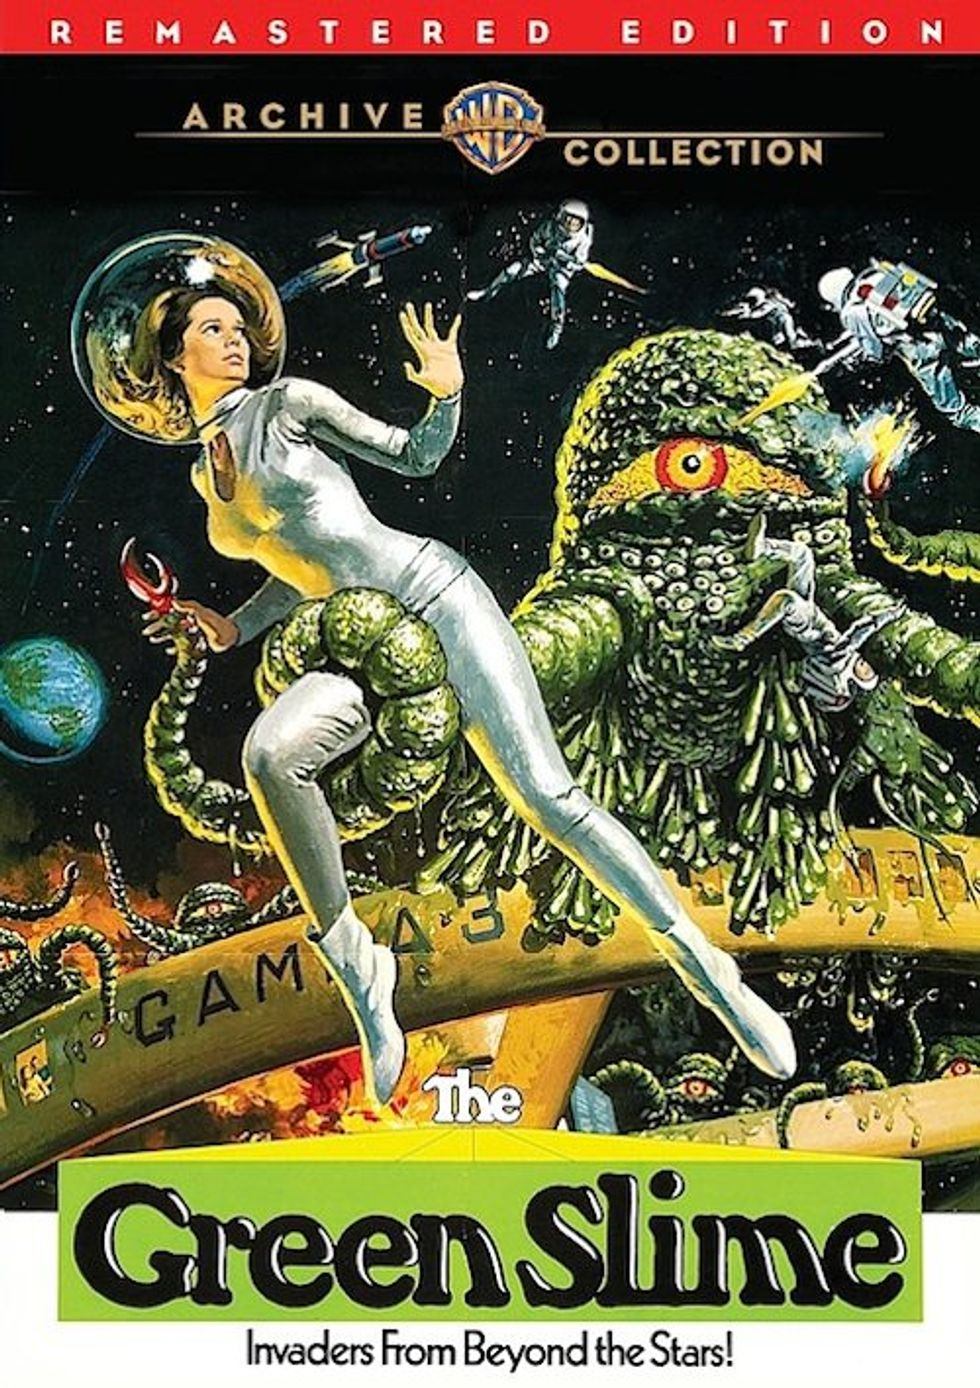 The Green Slime On Warner Archive DVD